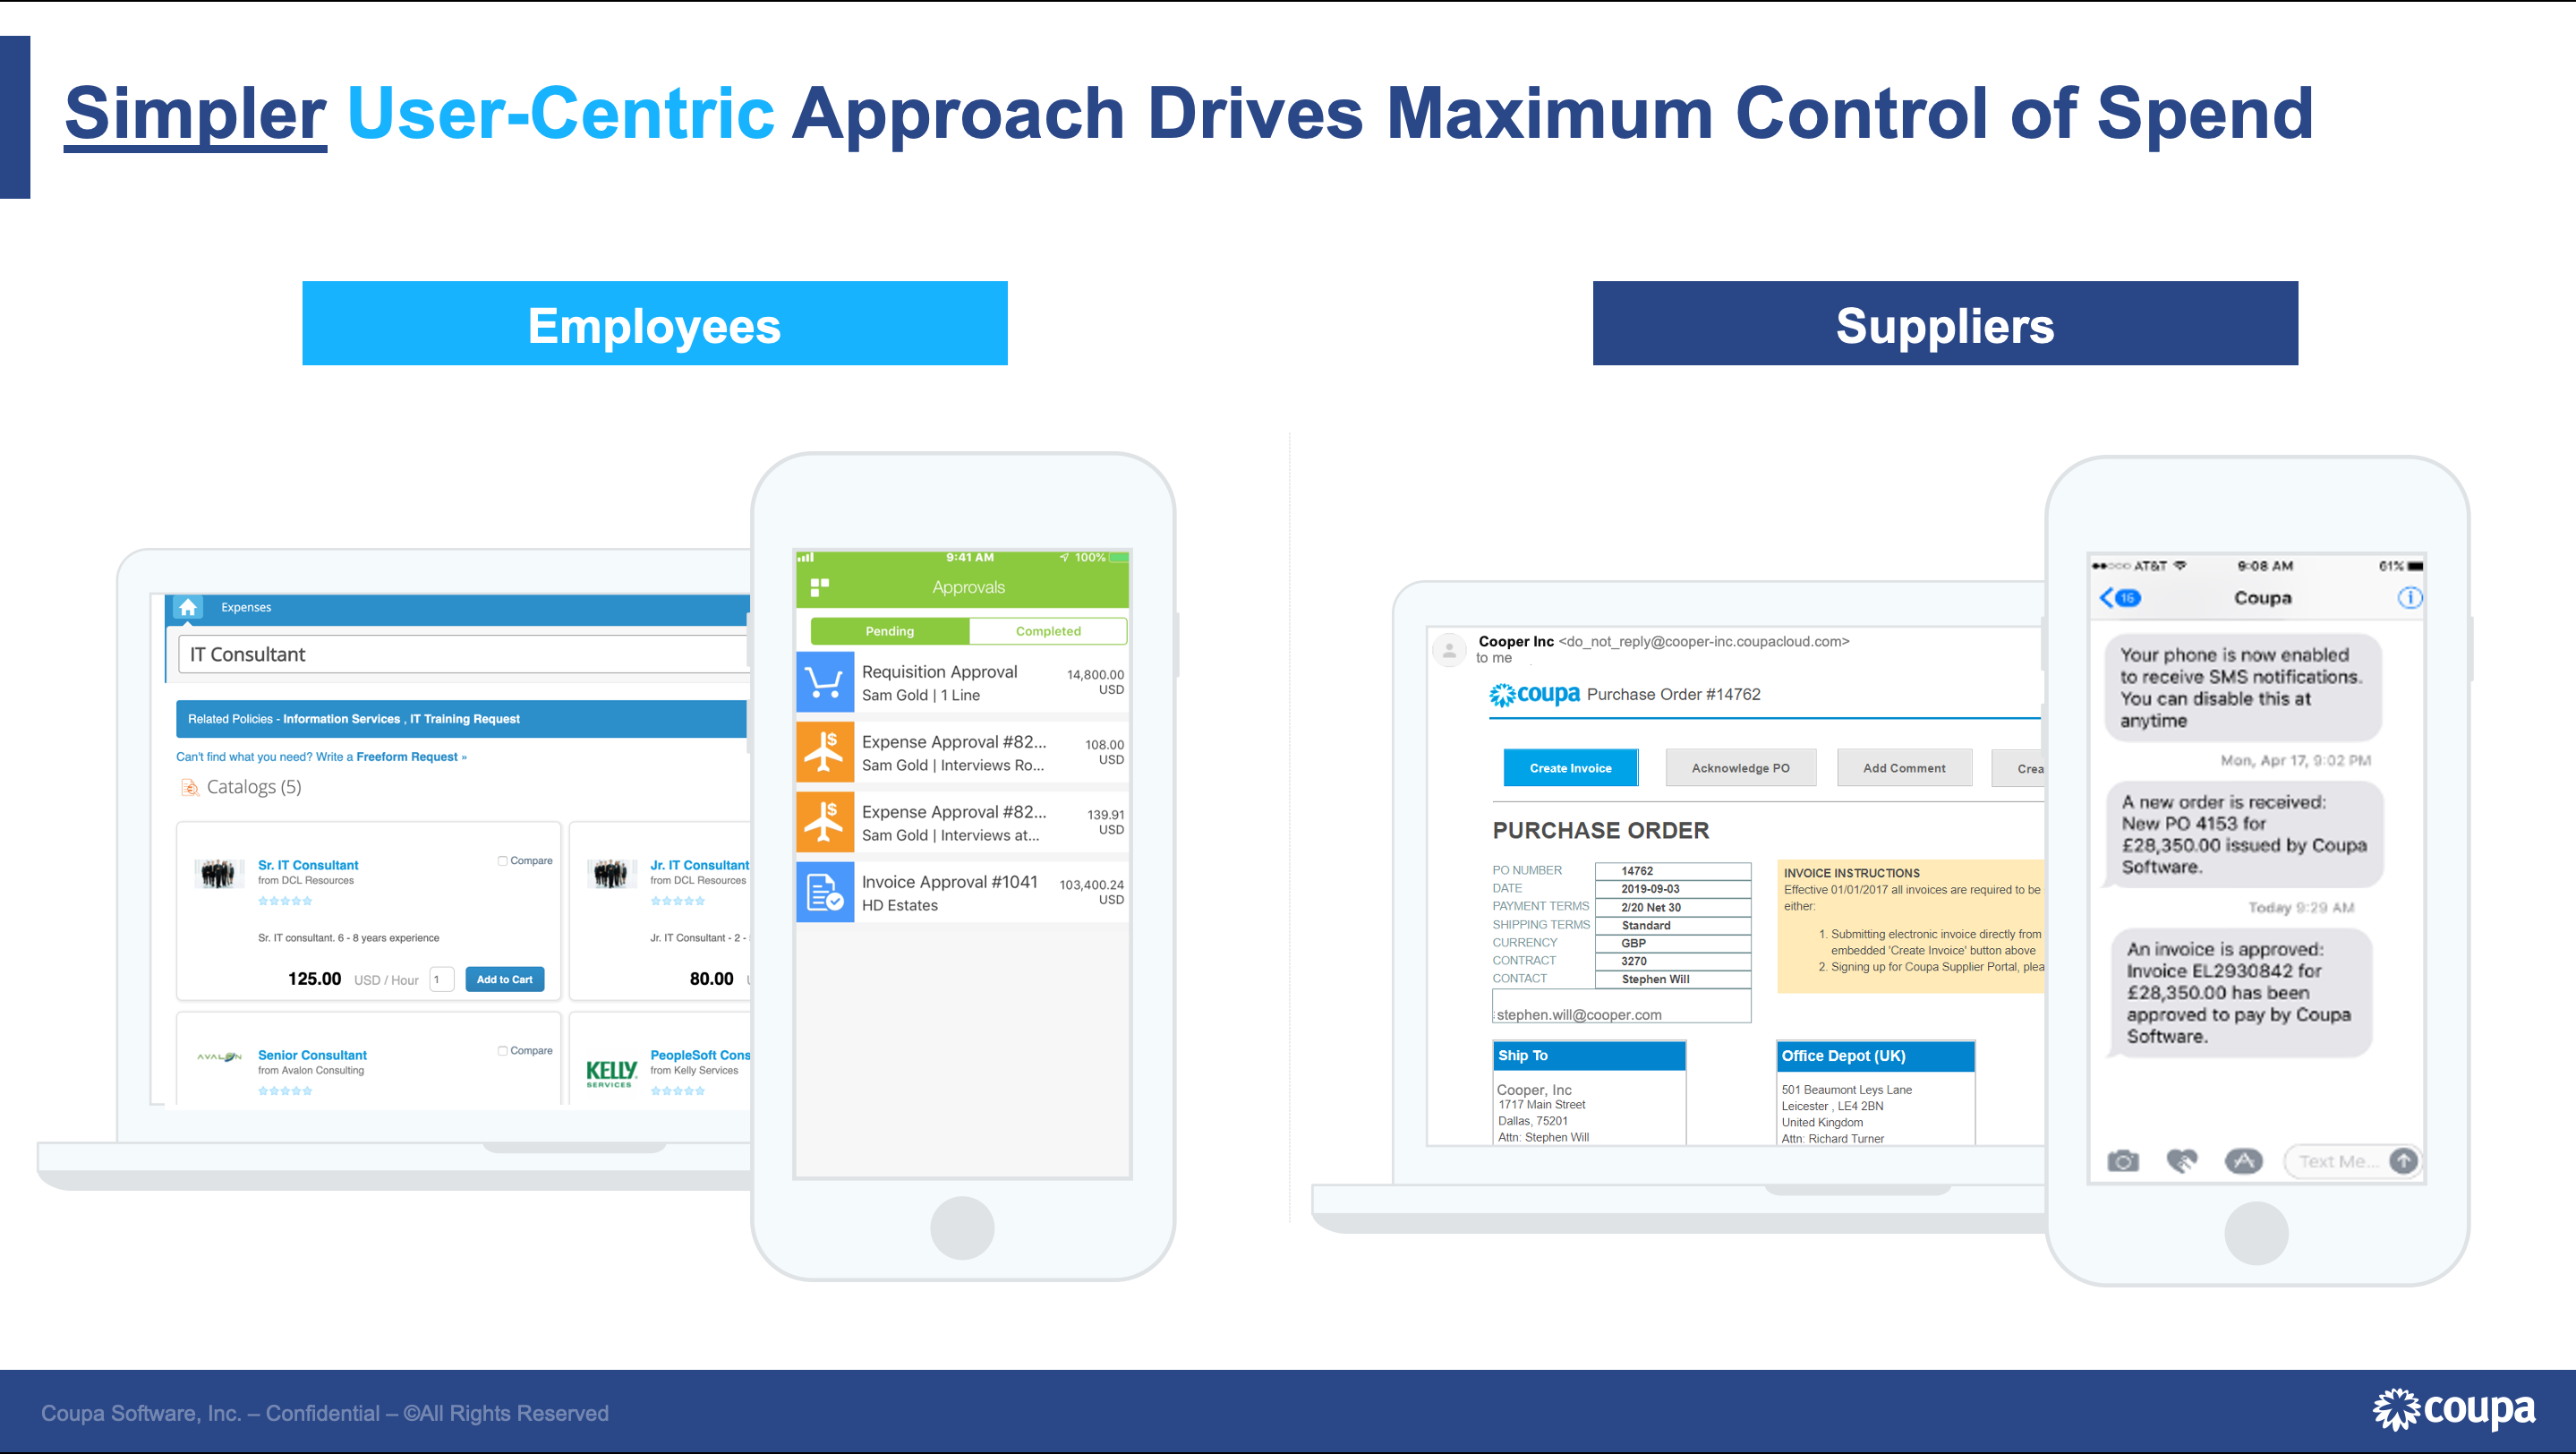 Coupa Business Spend Management Software - User-Centric Approach